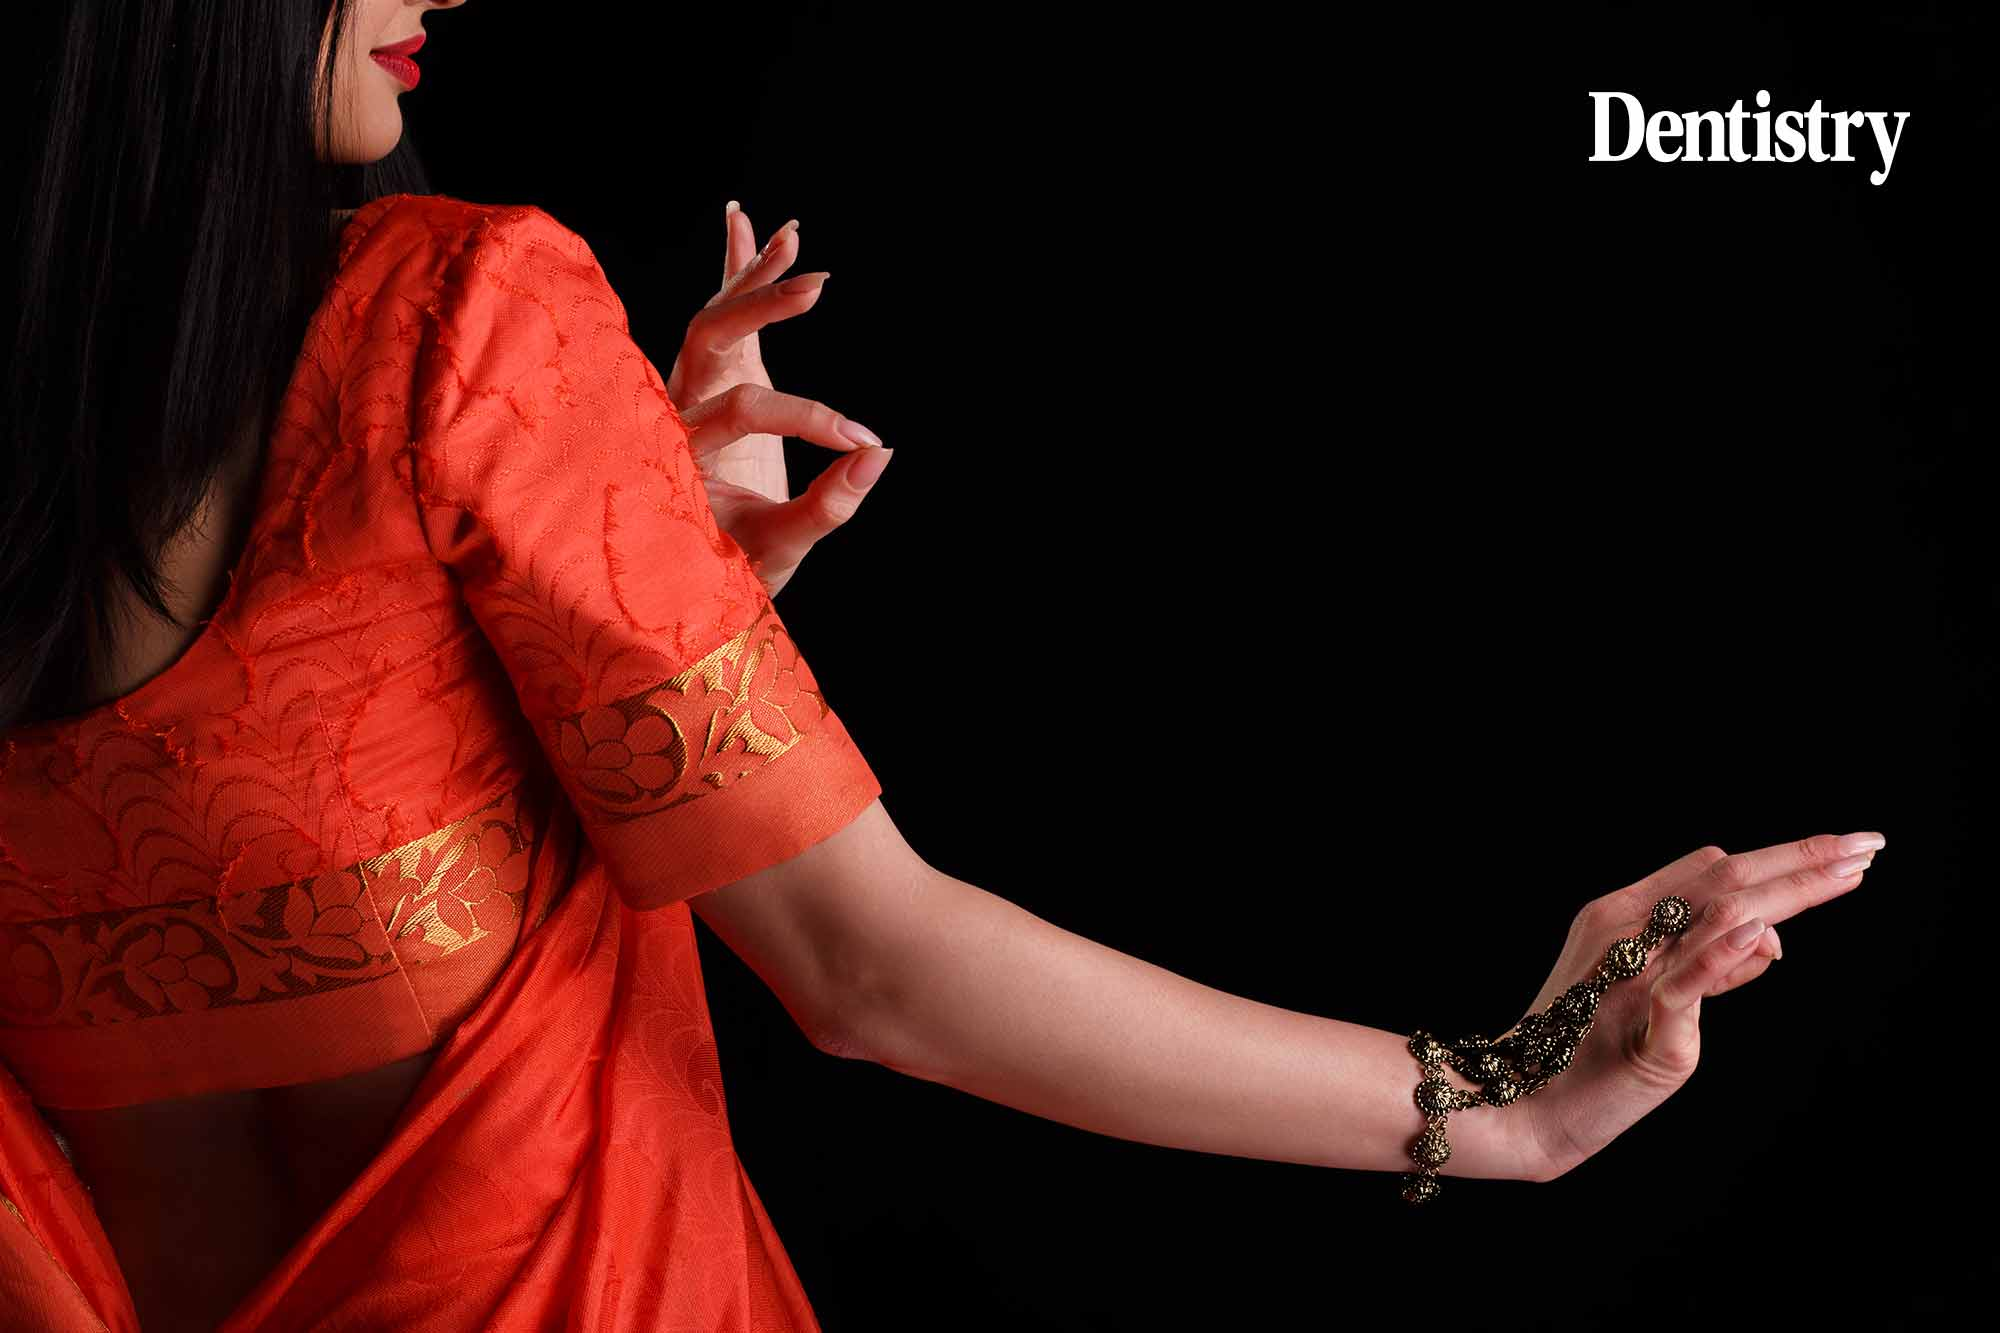 The Bollywood Dentist Ball is set for next week – making this the last chance for you to get involved.